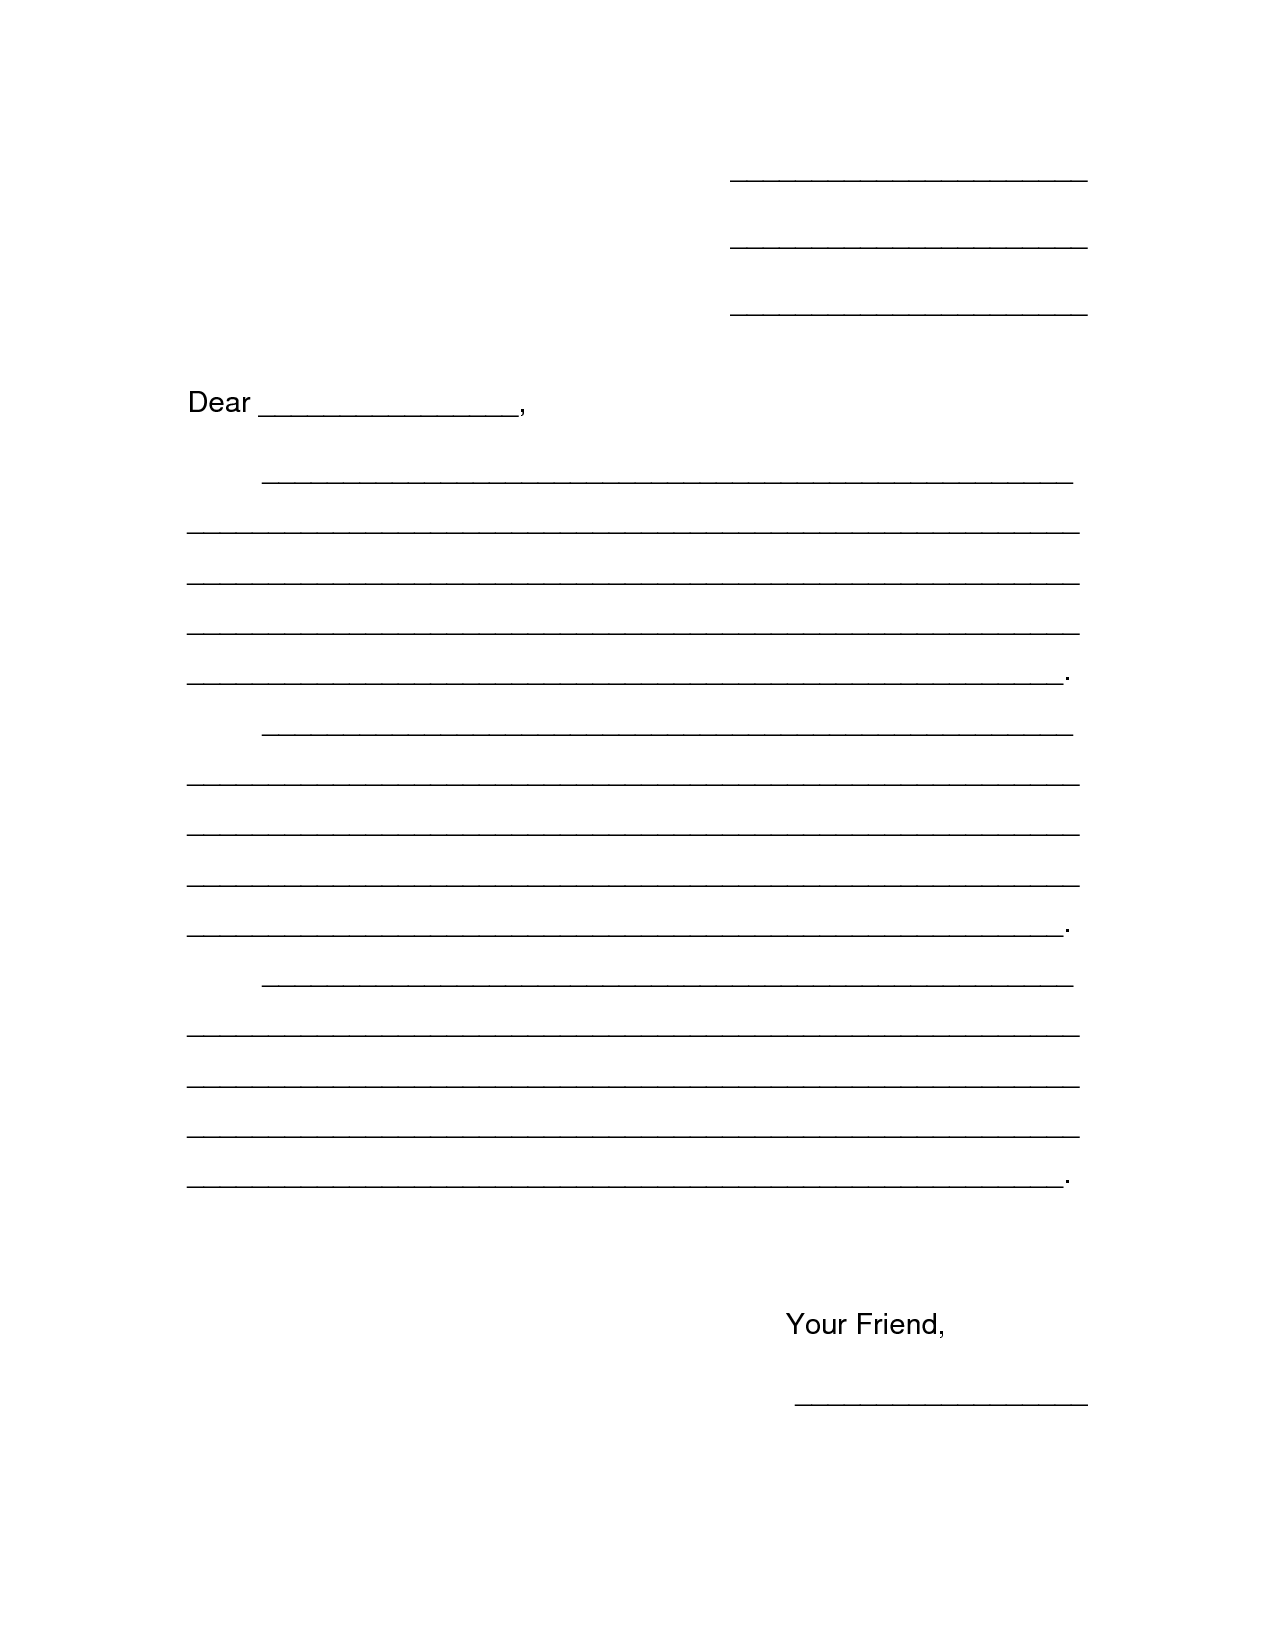 7 Images of Friendly Letter Writing Paper Printable